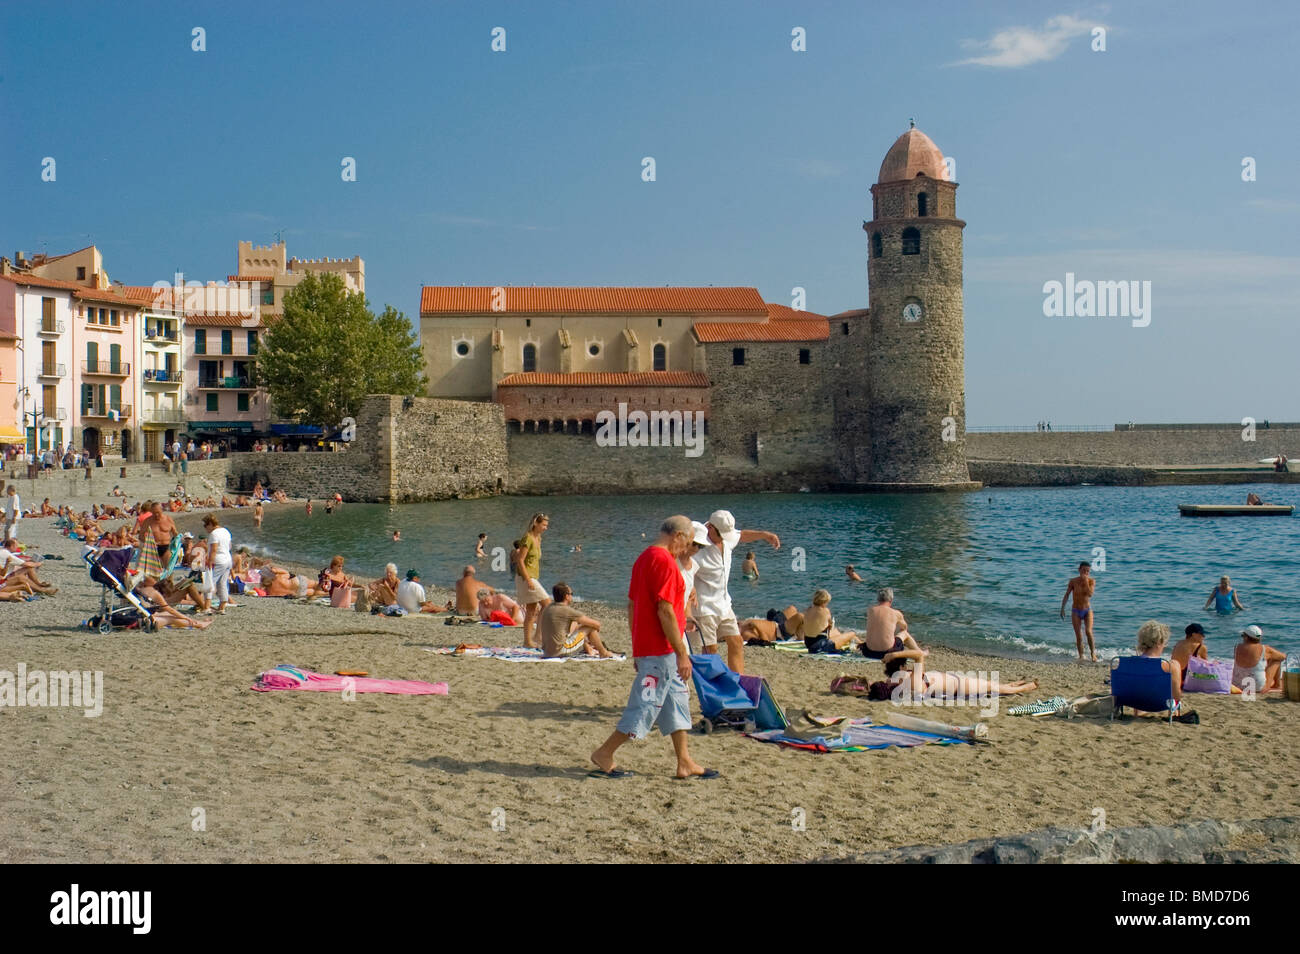 Calliore, France, Tourists on Holiday in South of France Coastal Town, Near Perpignan, Stock Photo